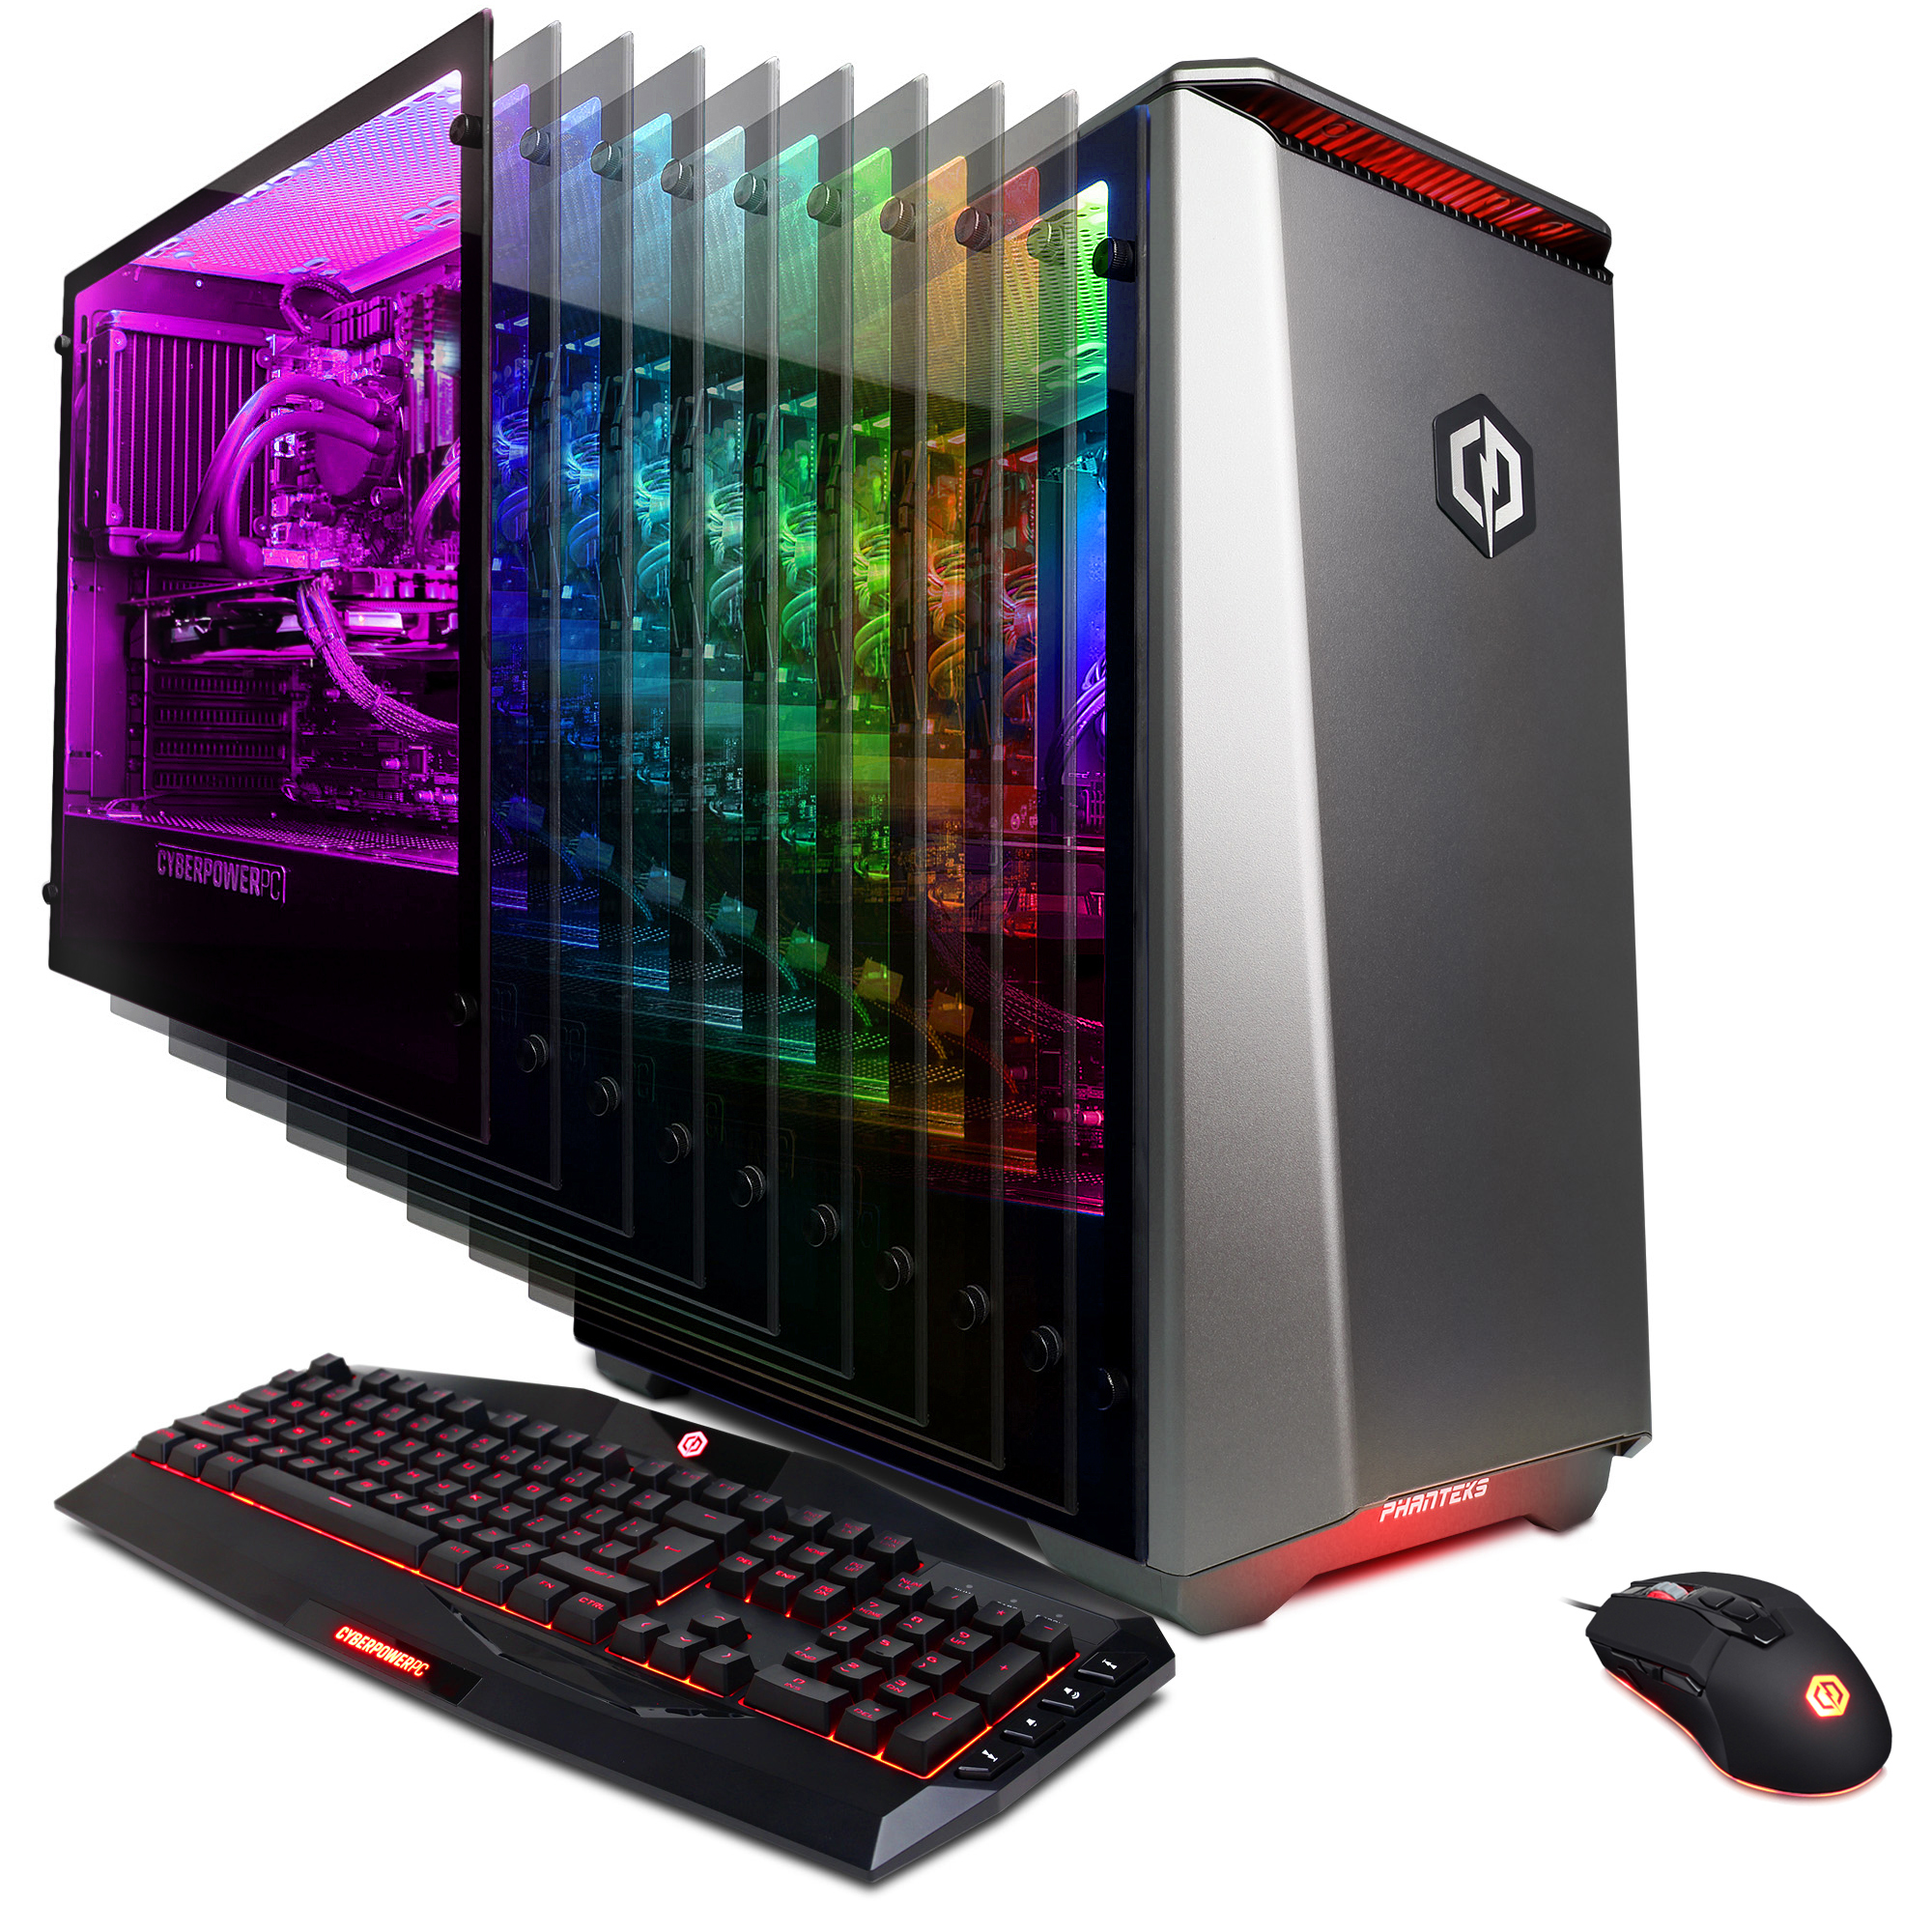 CYBERPOWERPC Gamer Panzer Limited PL3400W PC with Liquid Cooled Intel i7-8086K Processor, 16GB Memory, NVIDIA GeForce GTX 1080 8GB, 240GB SSD, 2TB HDD, 802.11ac WiFi and Win 10 Home 64-Bit